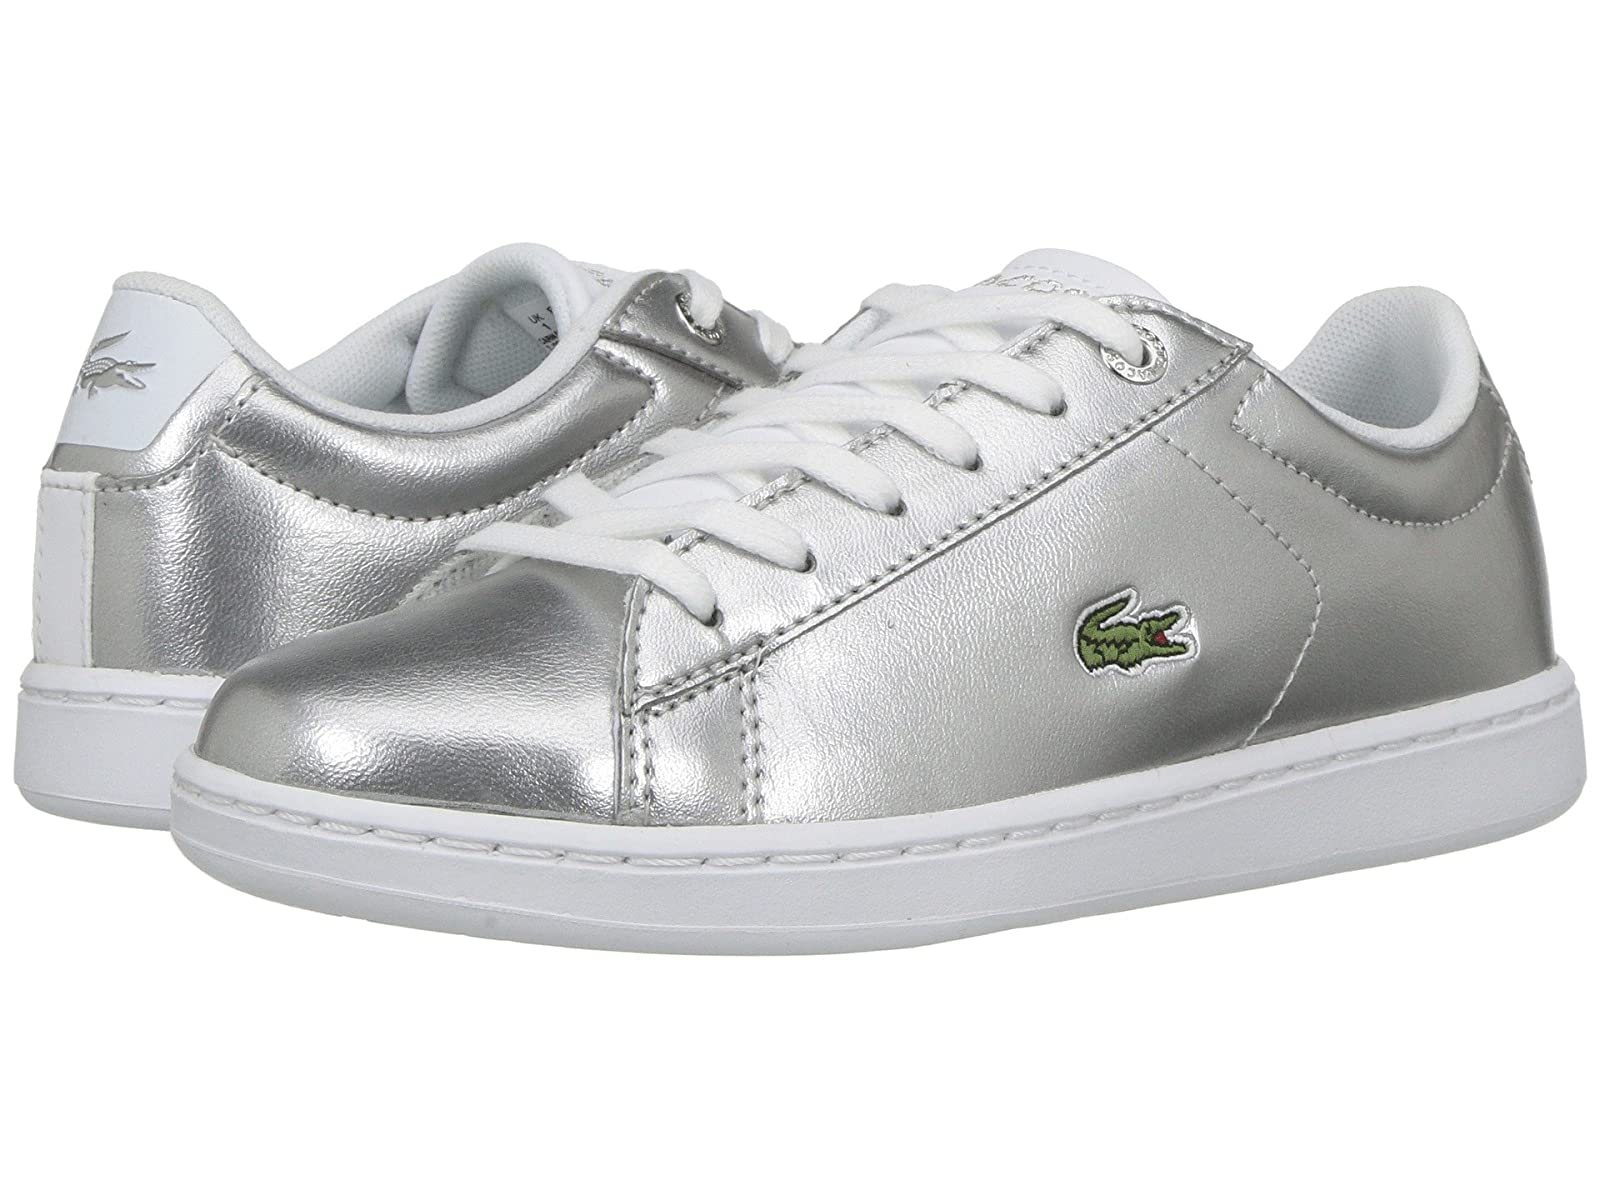 Lacoste Kids Carnaby Evo 318 (Little Kid)Atmospheric grades have affordable shoes